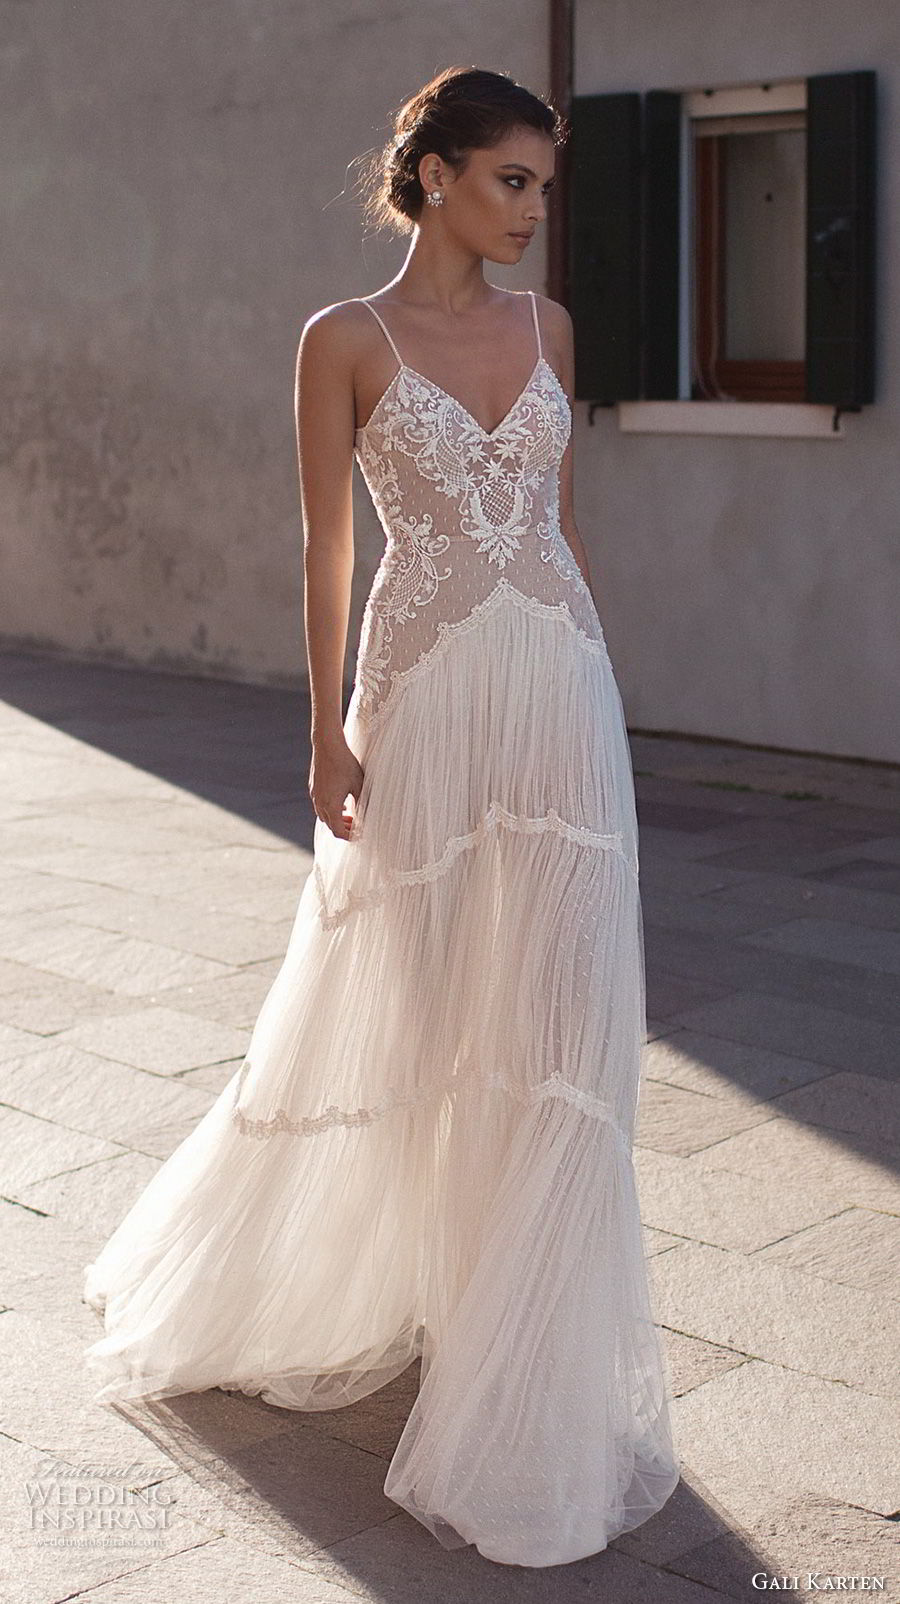 gali karten 2018 bridal spaghetti strap sweetheart neckline heavily embellished bodice romantic soft a line wedding dress open scoop back sweep train (10) mv